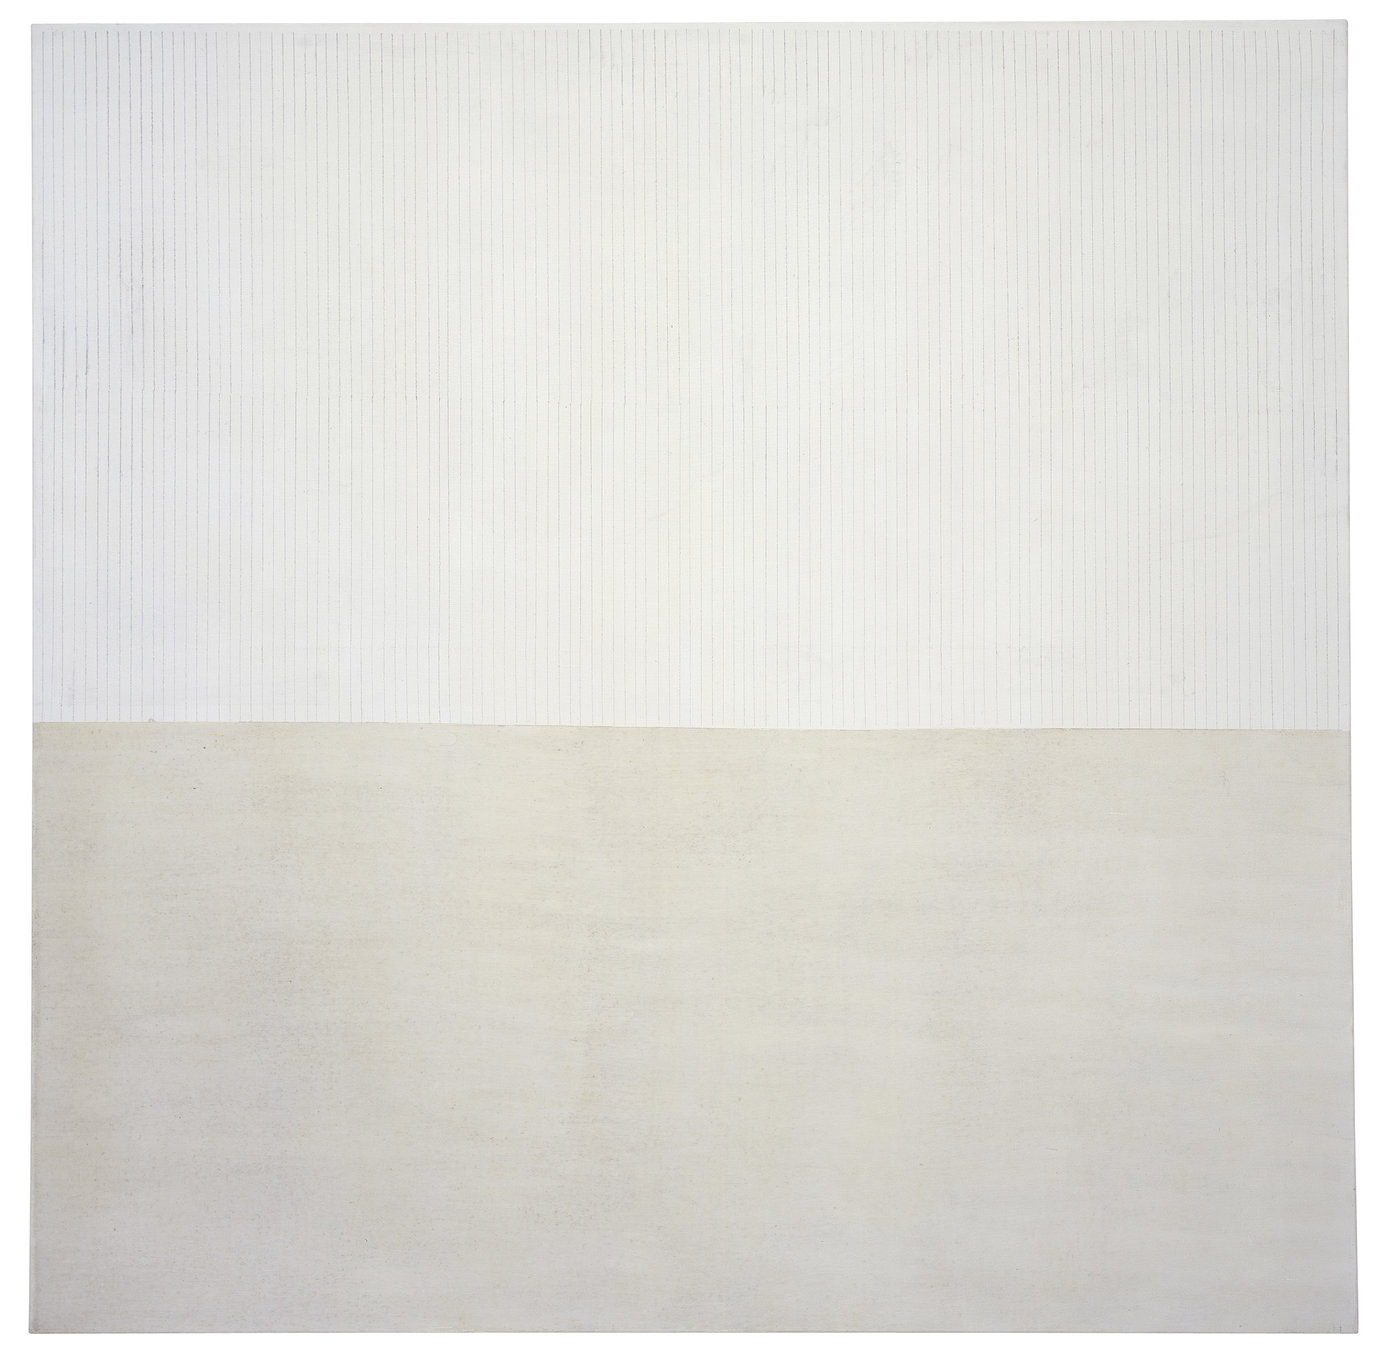 ", 2003. Acrylic and graphite on canvas, 60"" x 60"" (152.4 cm x 152.4 cm)."